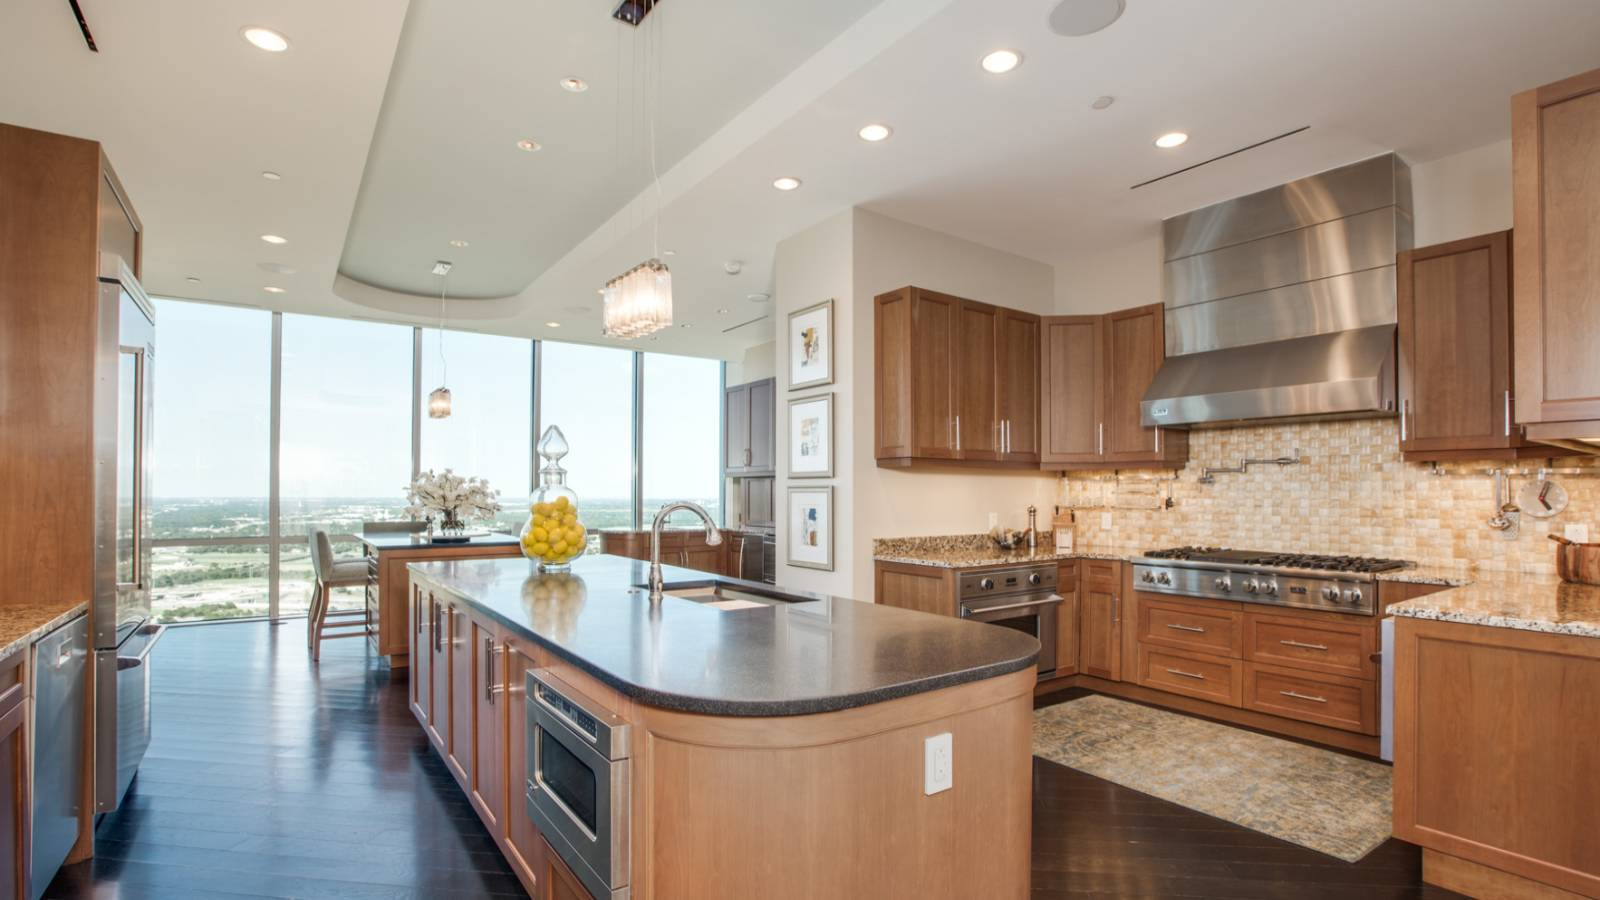 Contemporary kitchen with hardwood floors open to dining room